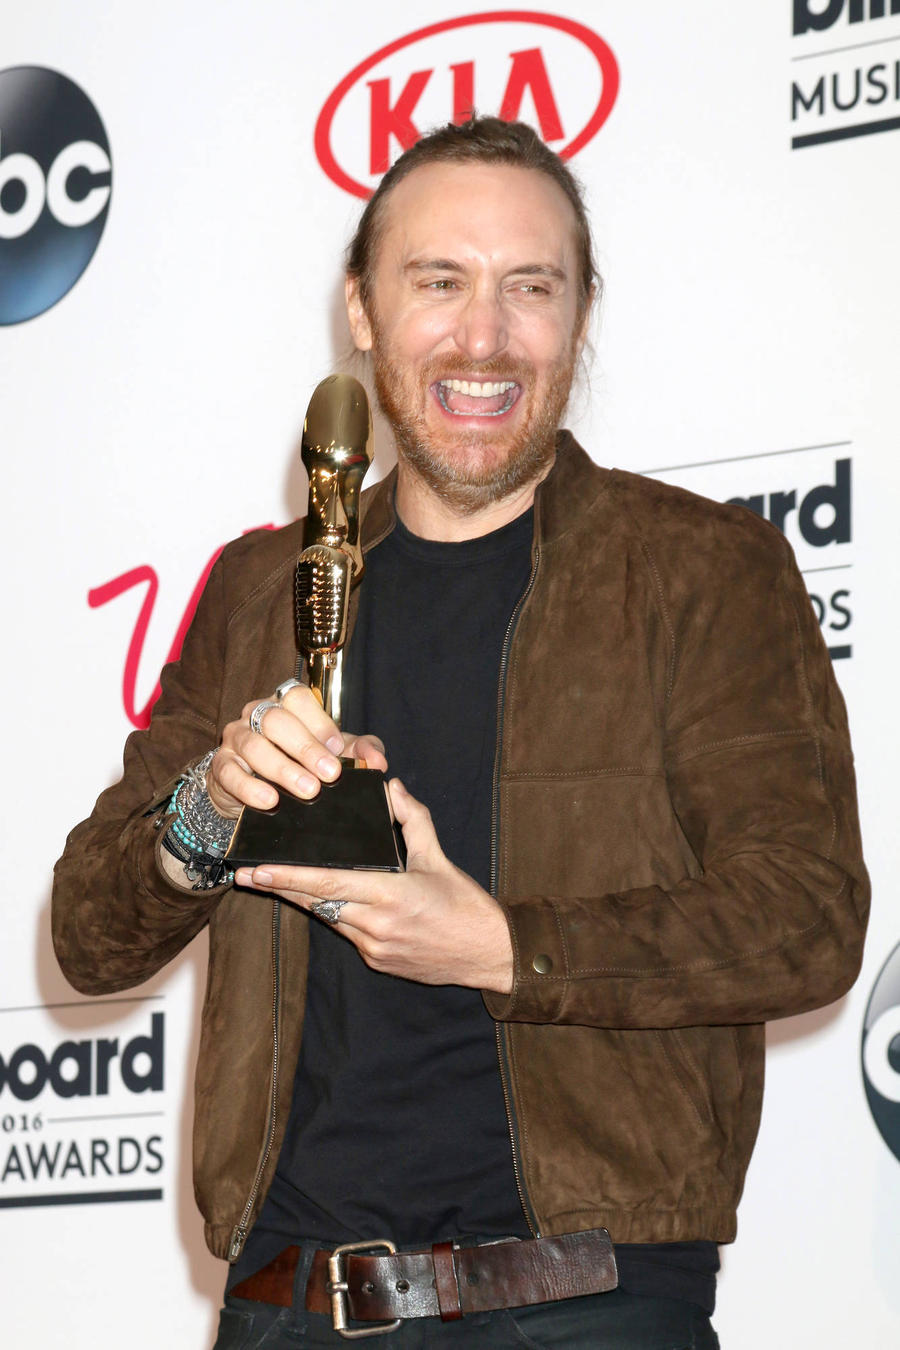 David Guetta Planning Intergalactic Gig